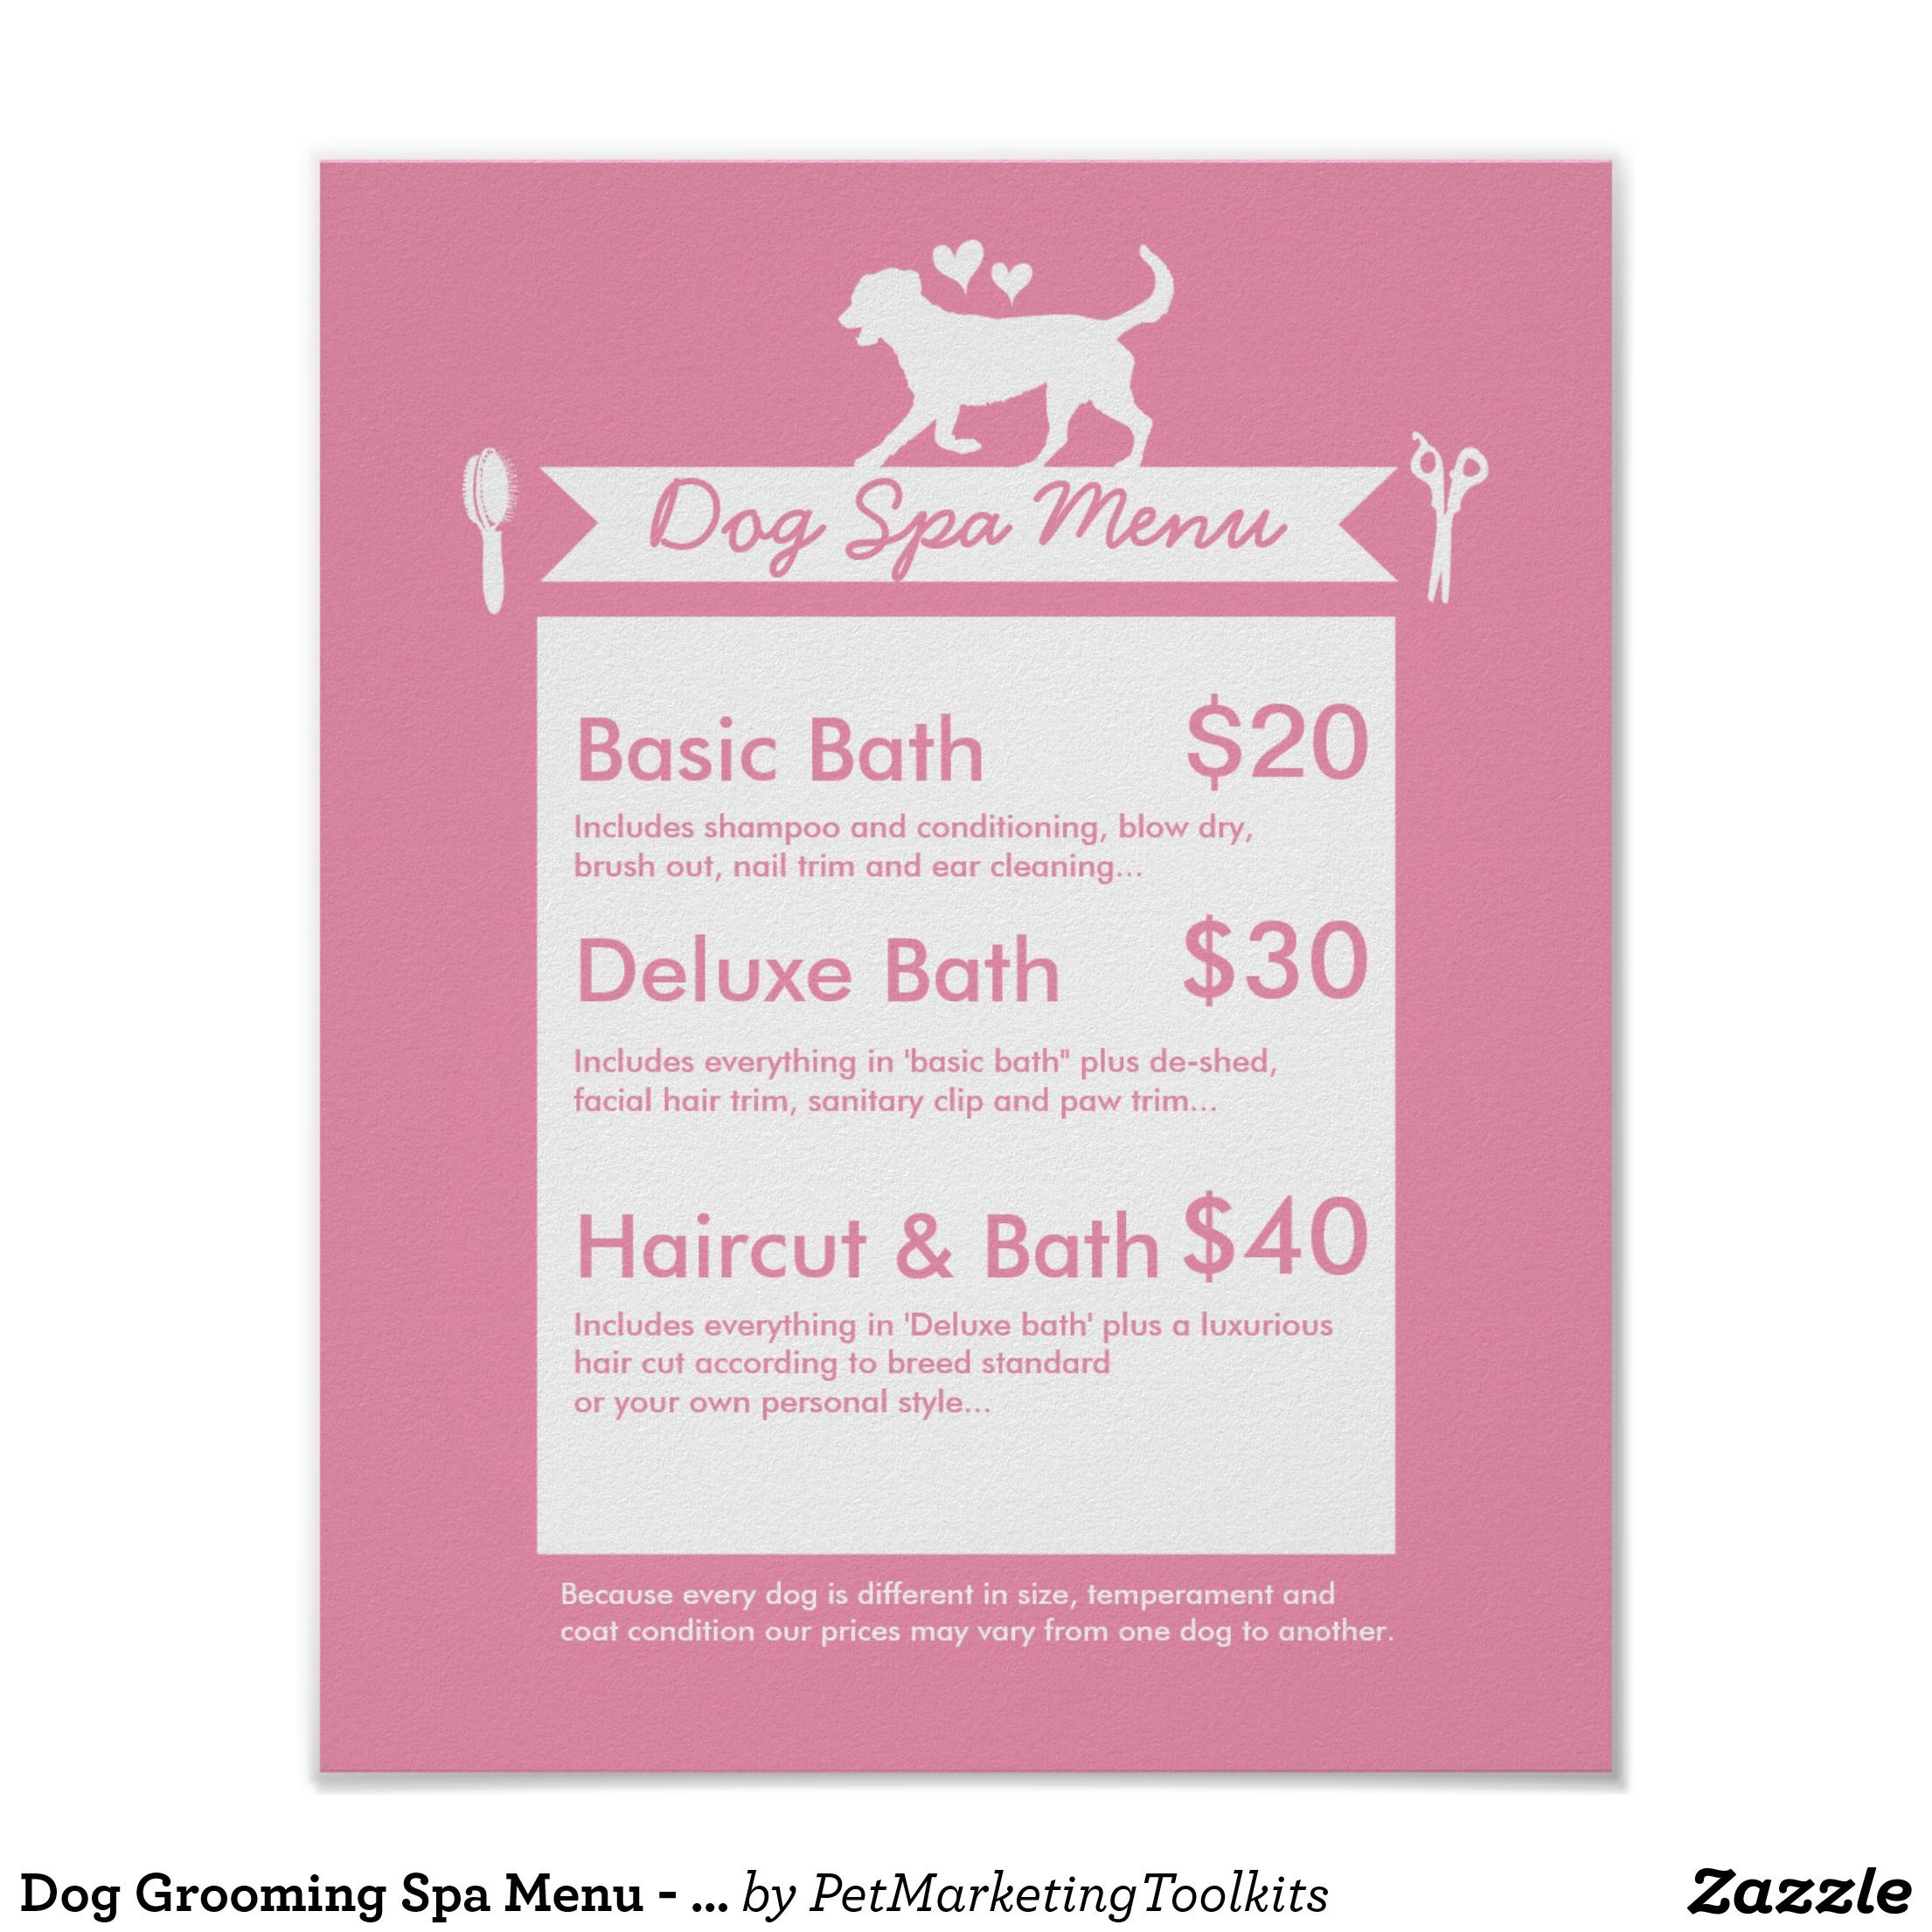 Dog Grooming Business Card Loyalty Card | Loyalty cards, Business ...